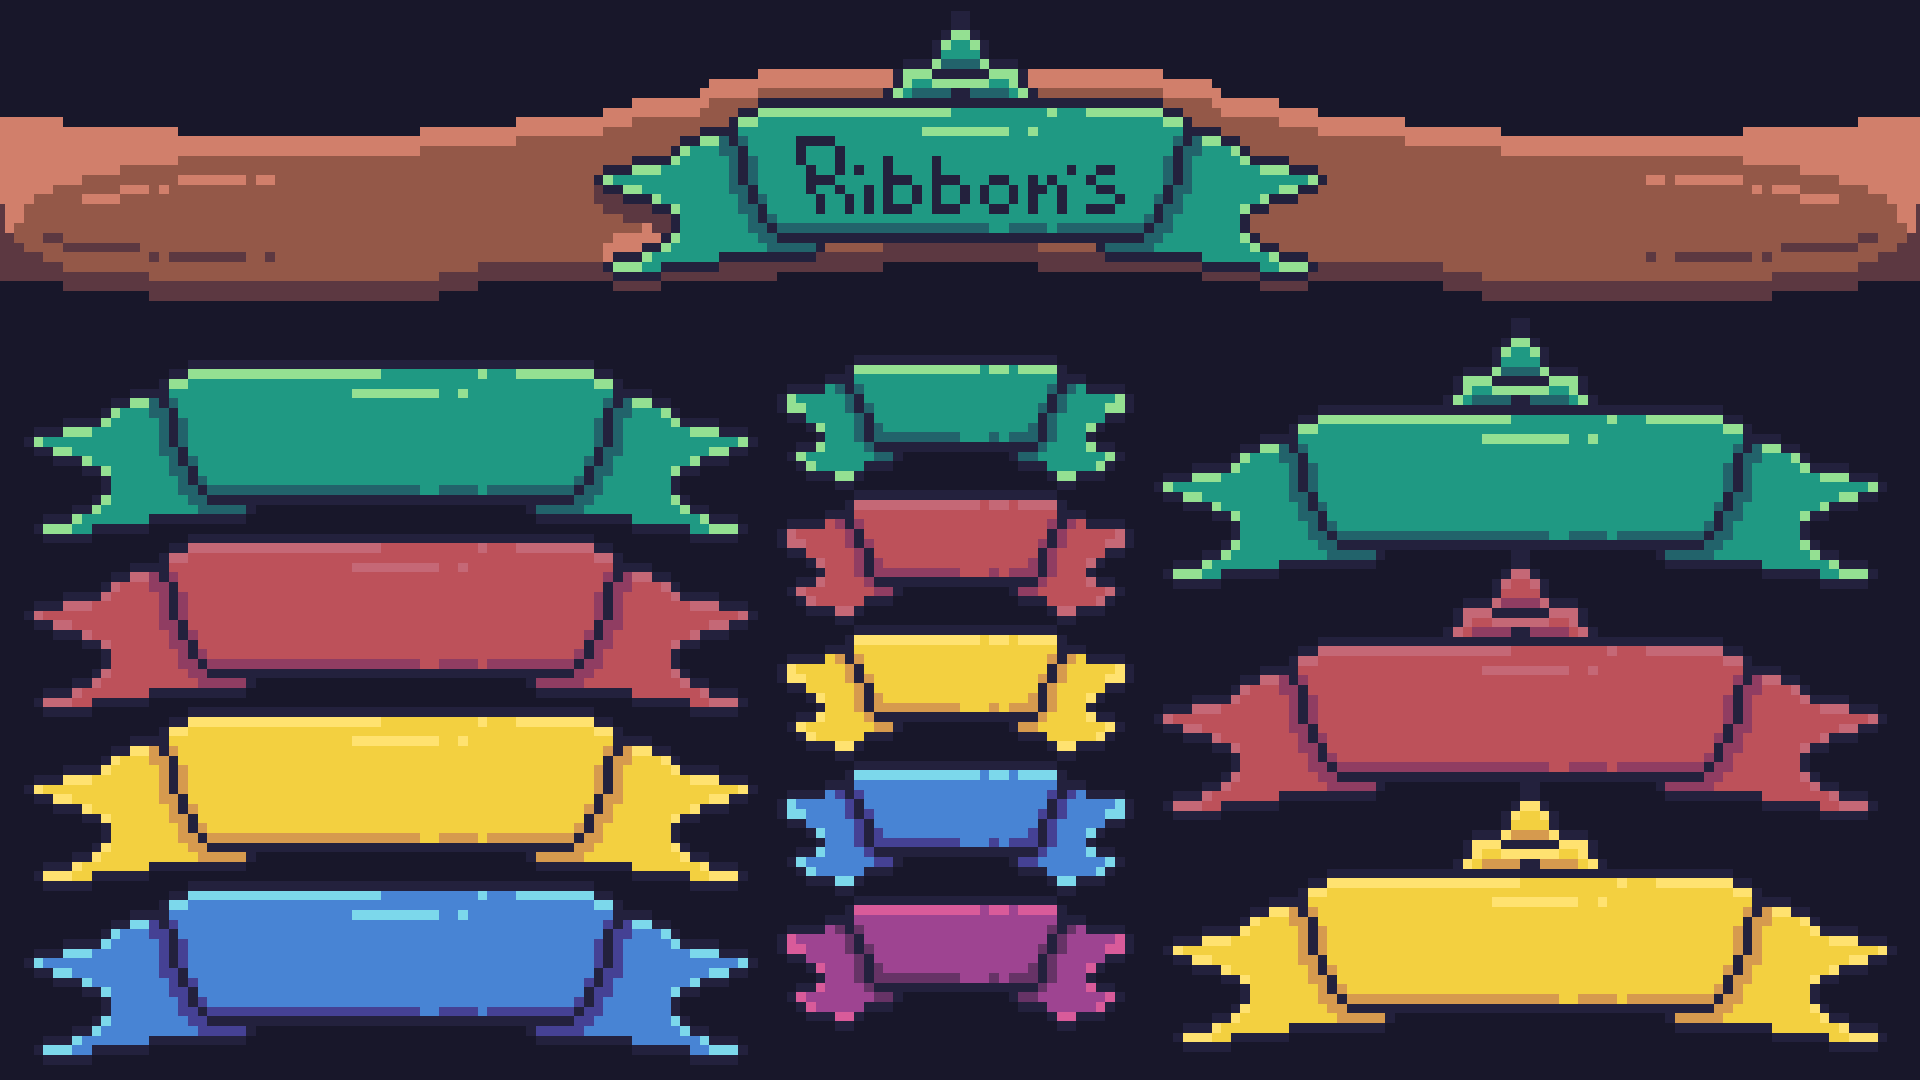 Item : Ribbon's